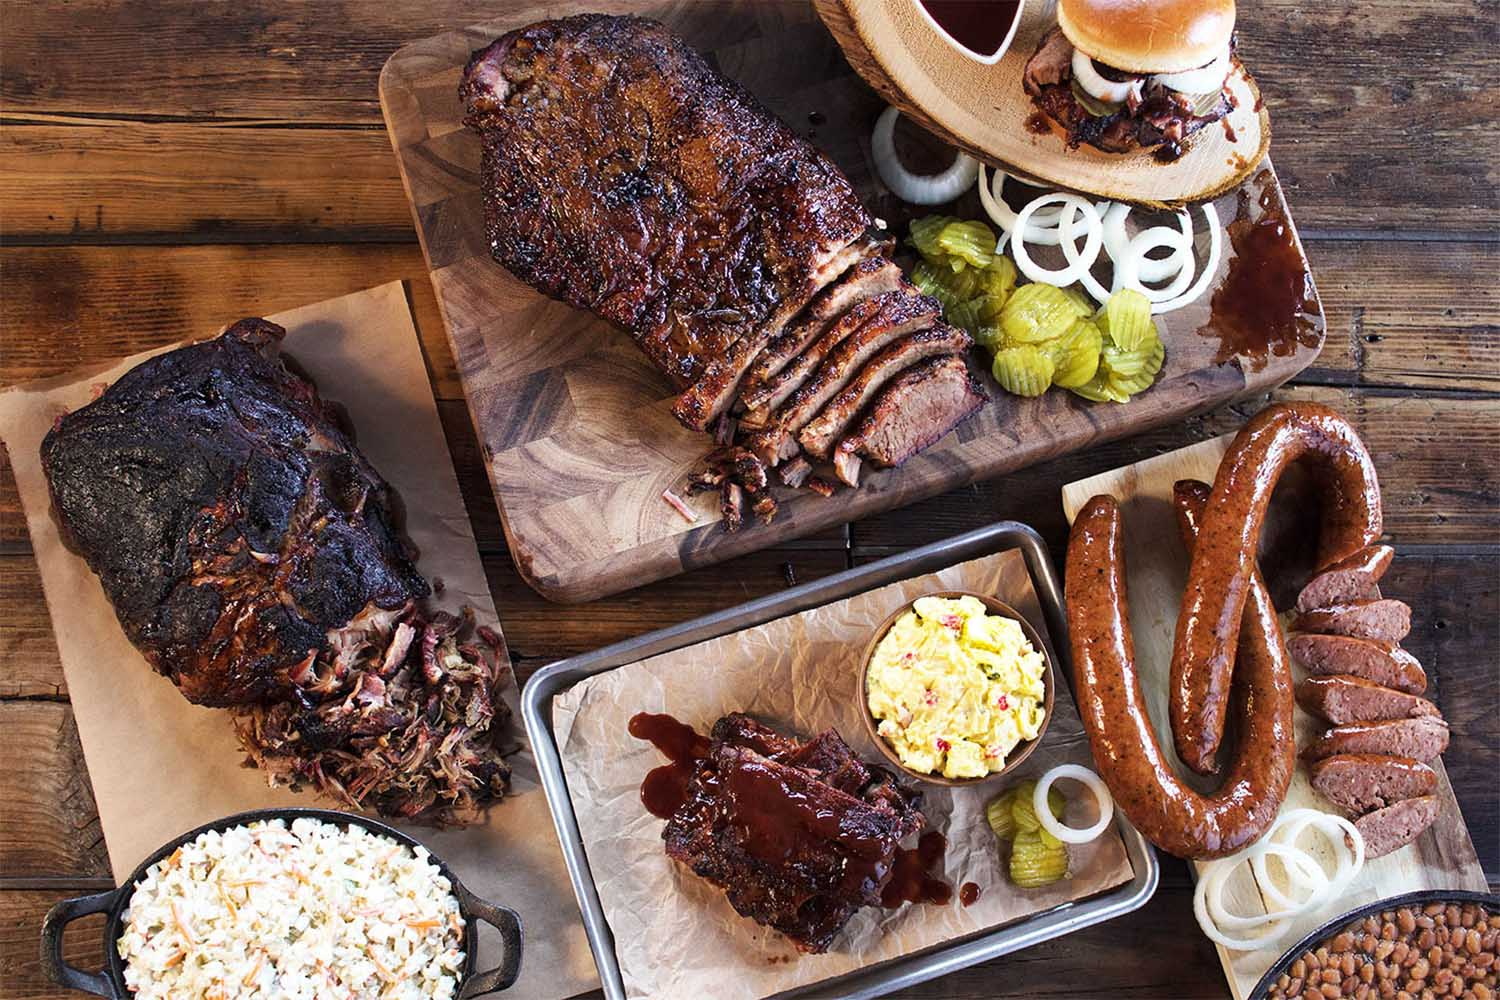 Make a Barbecue Resolution for 2015